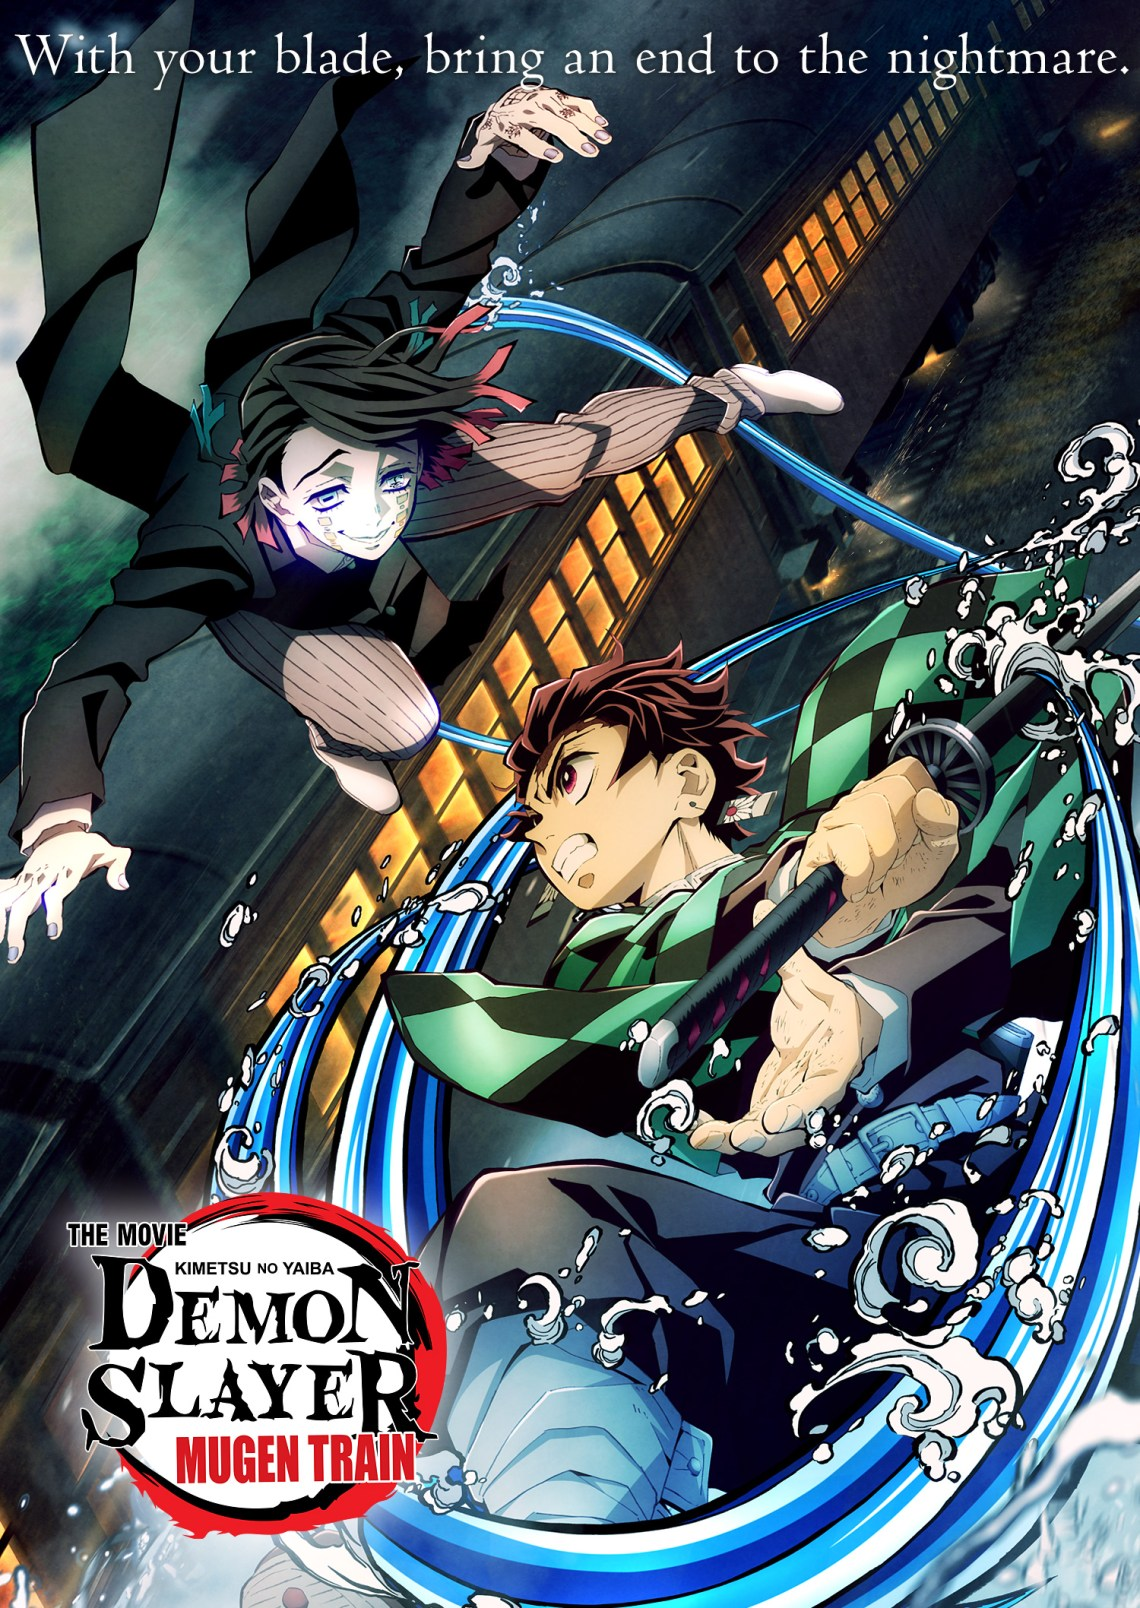 Demon Slayer: Mugen Train in Tampa Florida. Does anyone want to meet and  see together? Looking to make friends at this event. Contact if interested  and will set up a time and